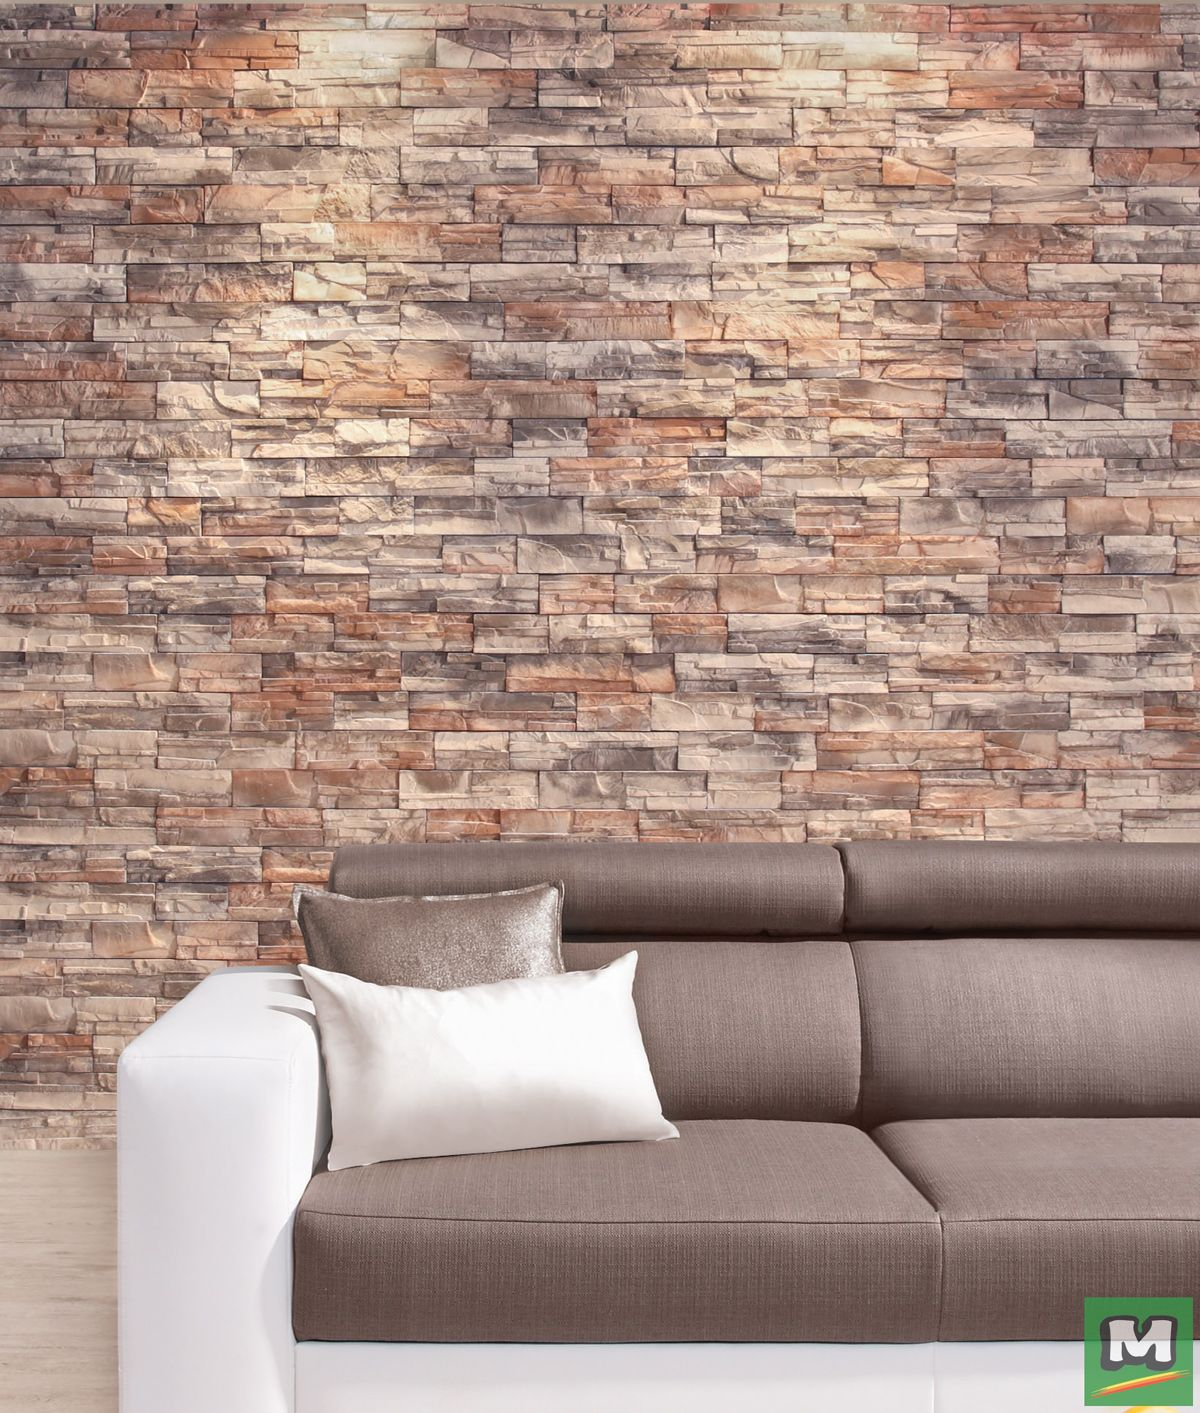 Create An Accent Wall With Roma Manufactured Stone Veneer